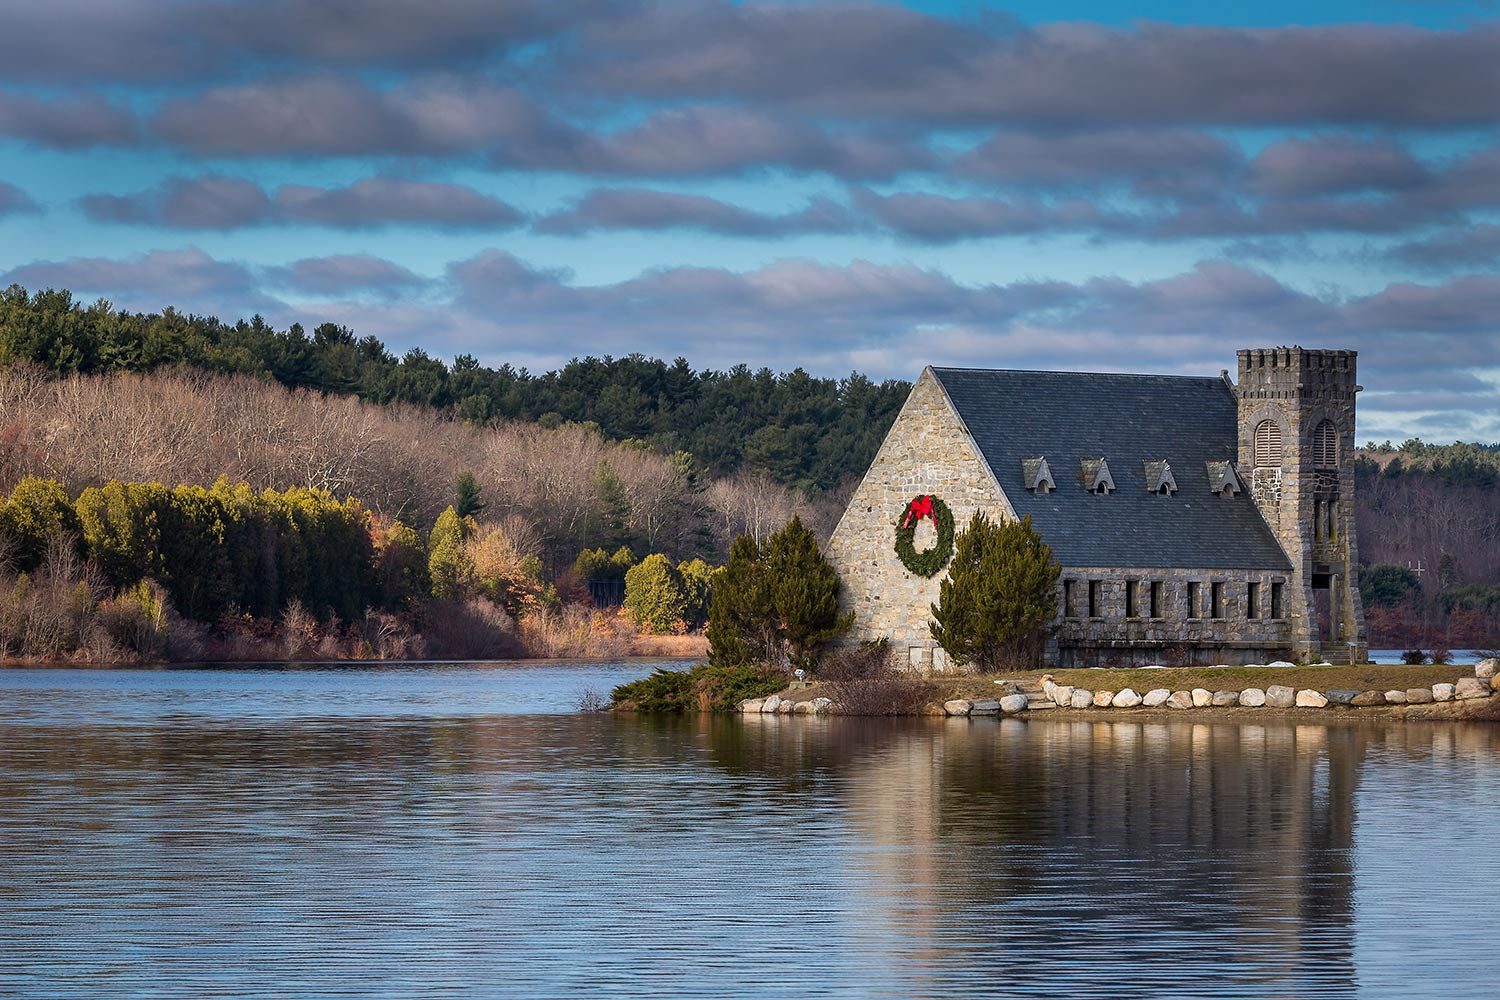 Old Stone Church with holiday wreath, West Boylston, MA